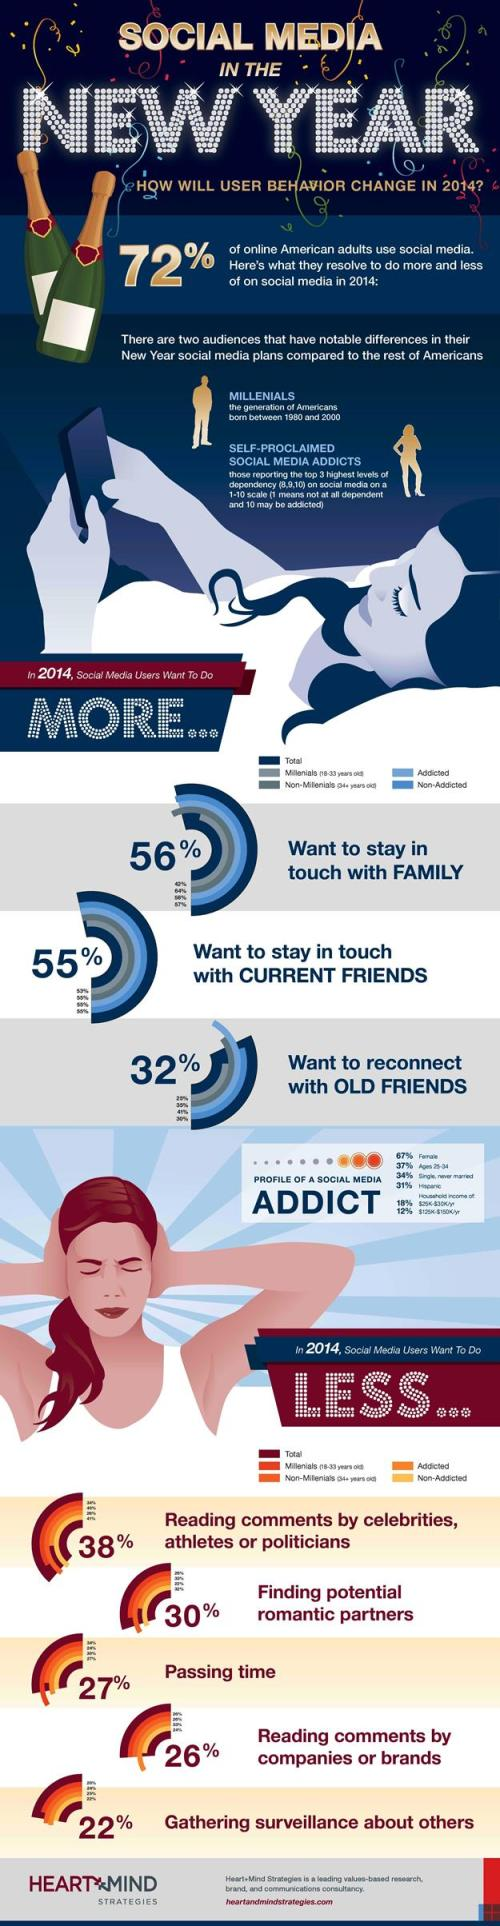 What to Expect in Social Media in 2014?